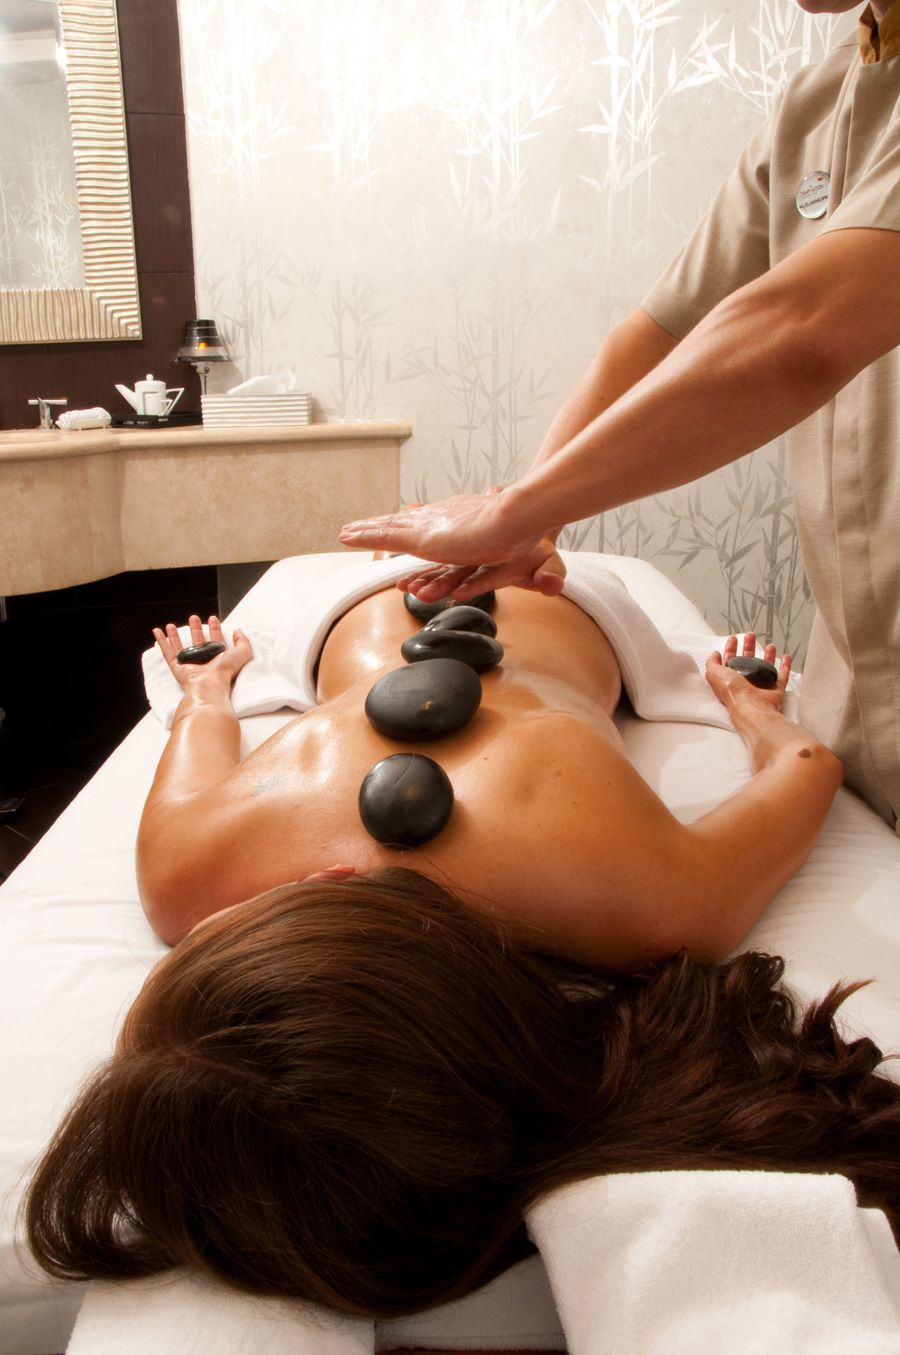 Massage is an excellent method to improve lymph movement and blood flow. #relax #massage #salonlife